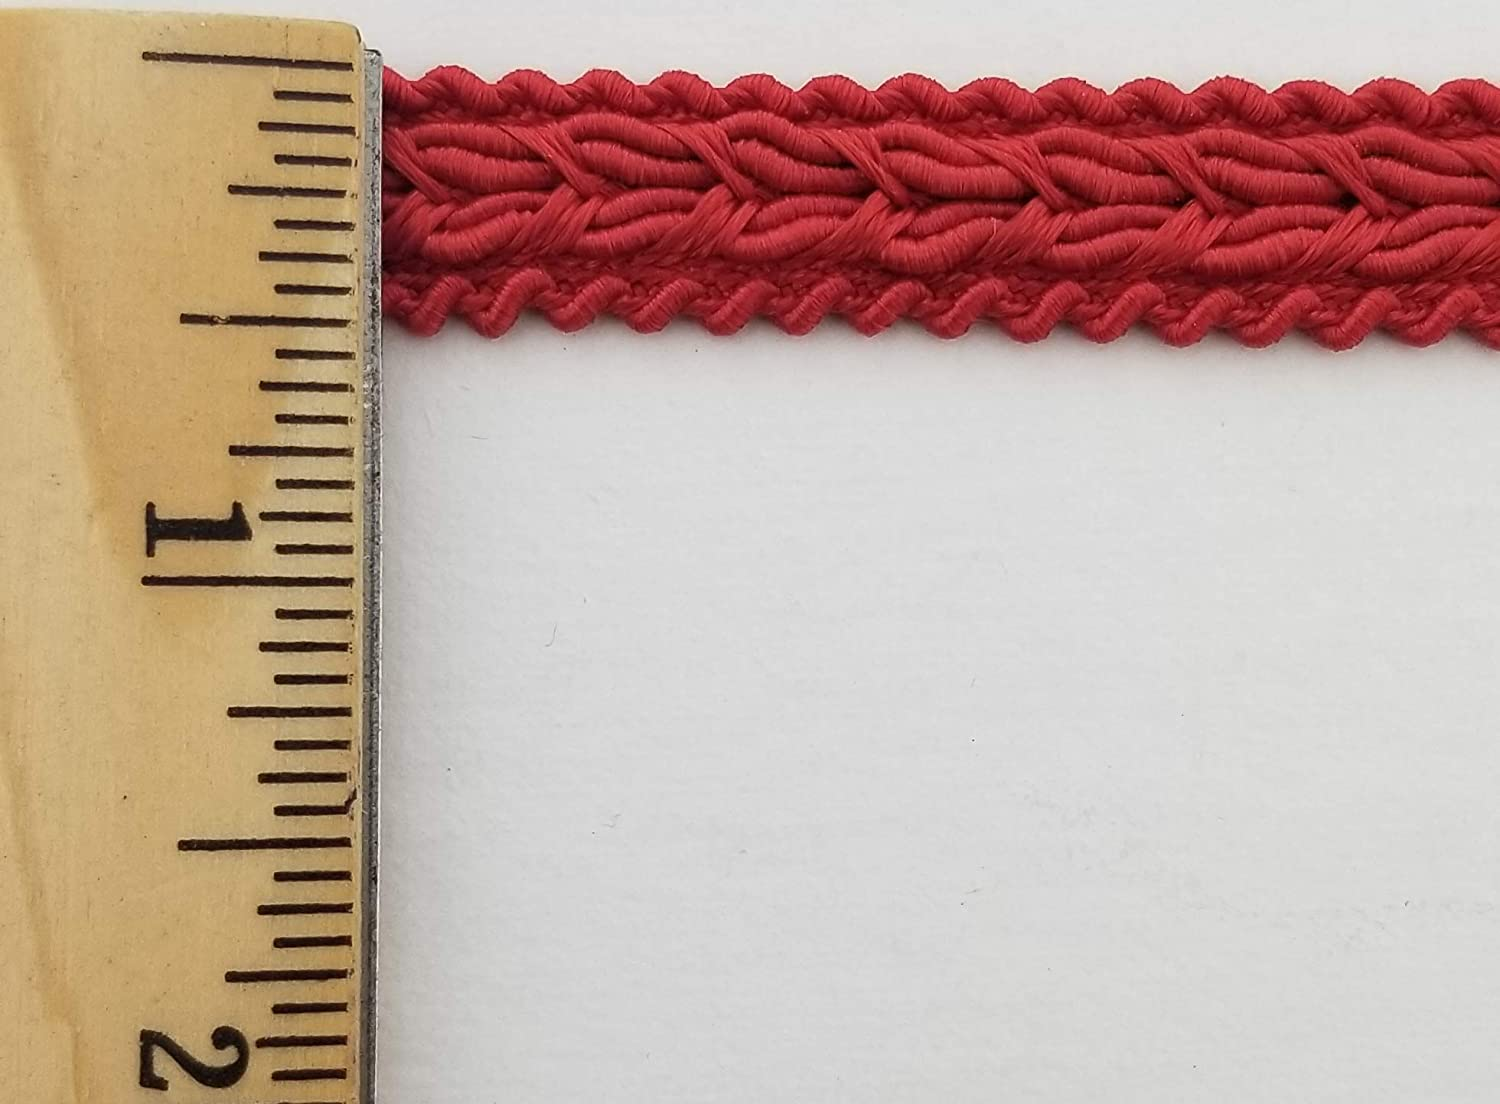 1//2 Braid Gimp Trimming Winter White 18 Continuous Yards Color Options Available!